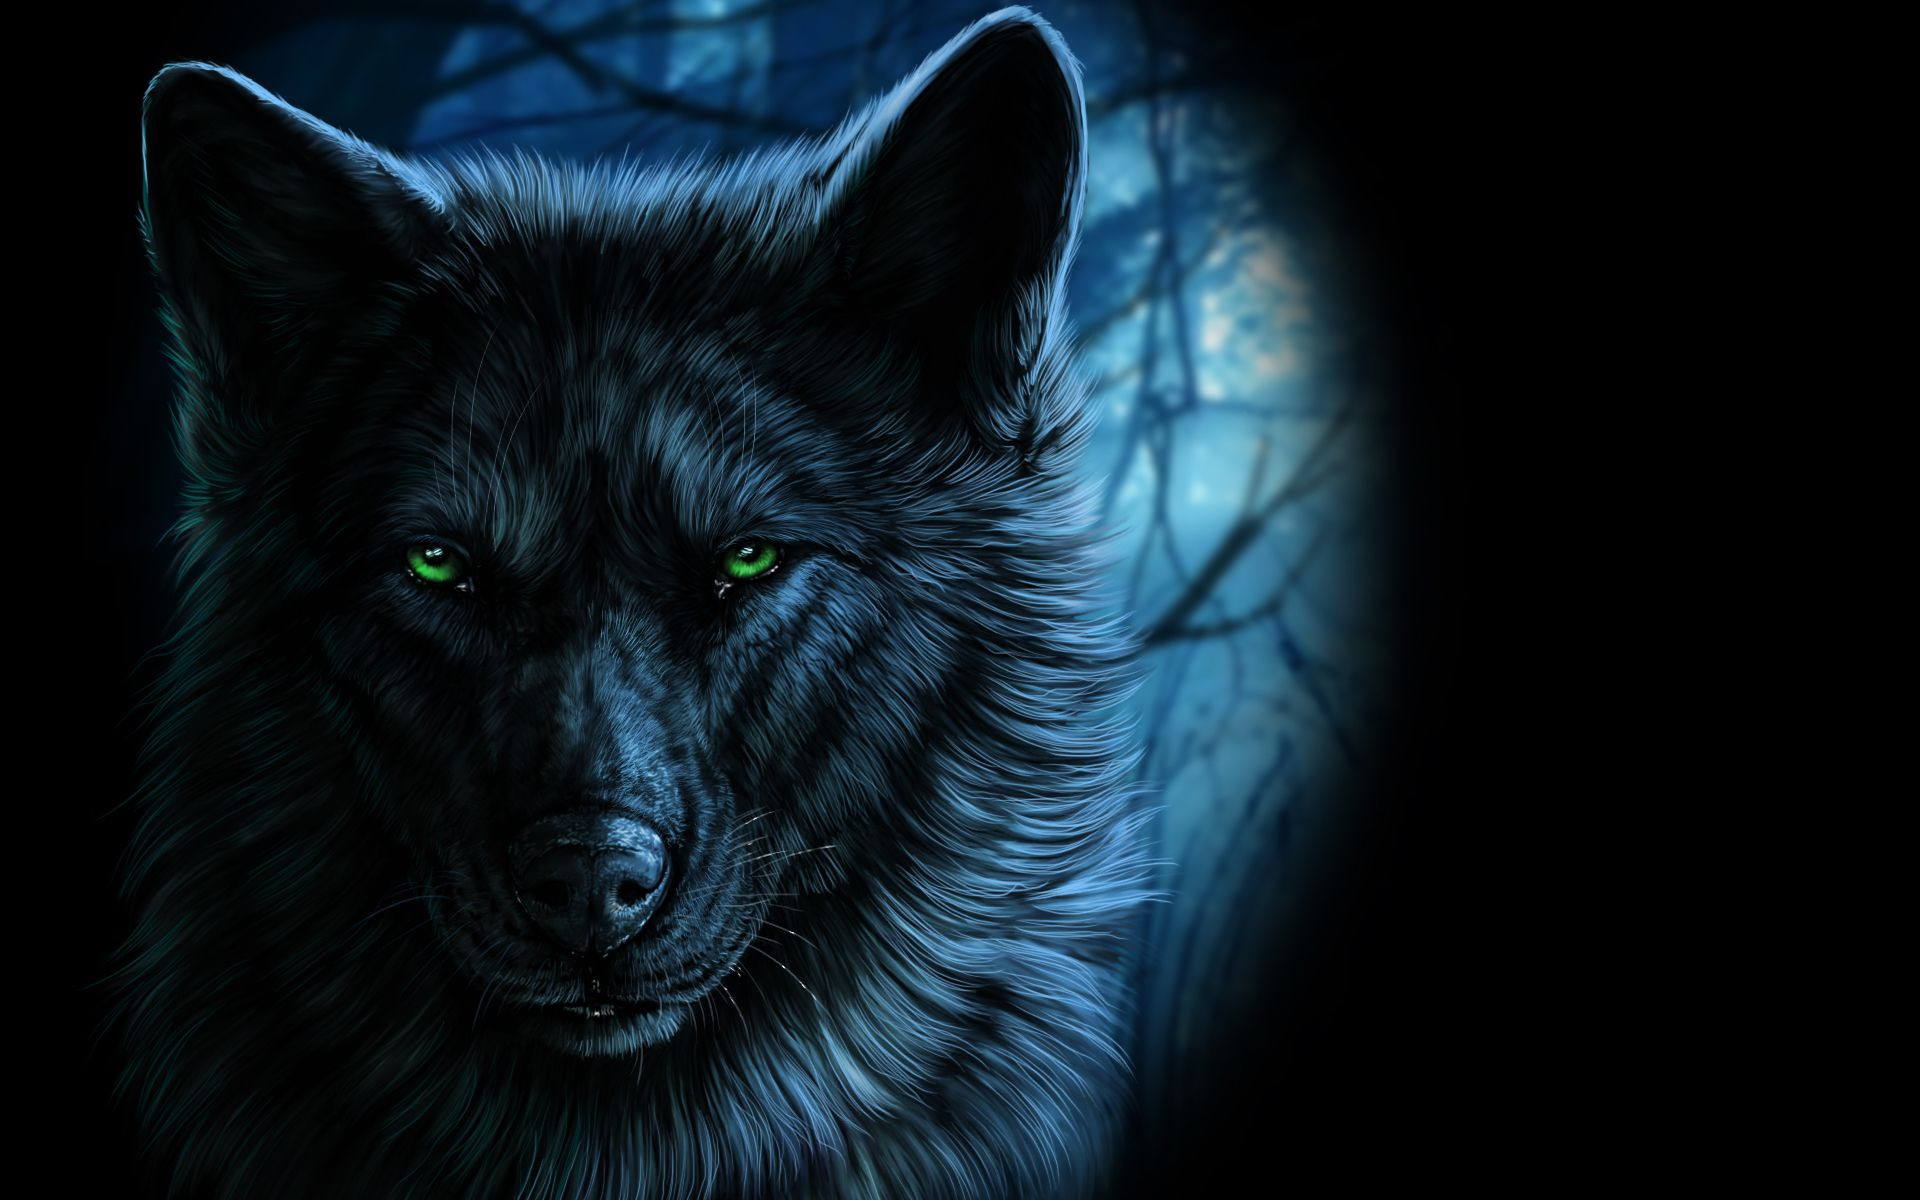 Wolf Eyes In The Dark Fantasy Portrait Of Wolf With Green Eyes In The Dark 4k Hd Fantasy Wolf Fantasy Art Men Wolf Images